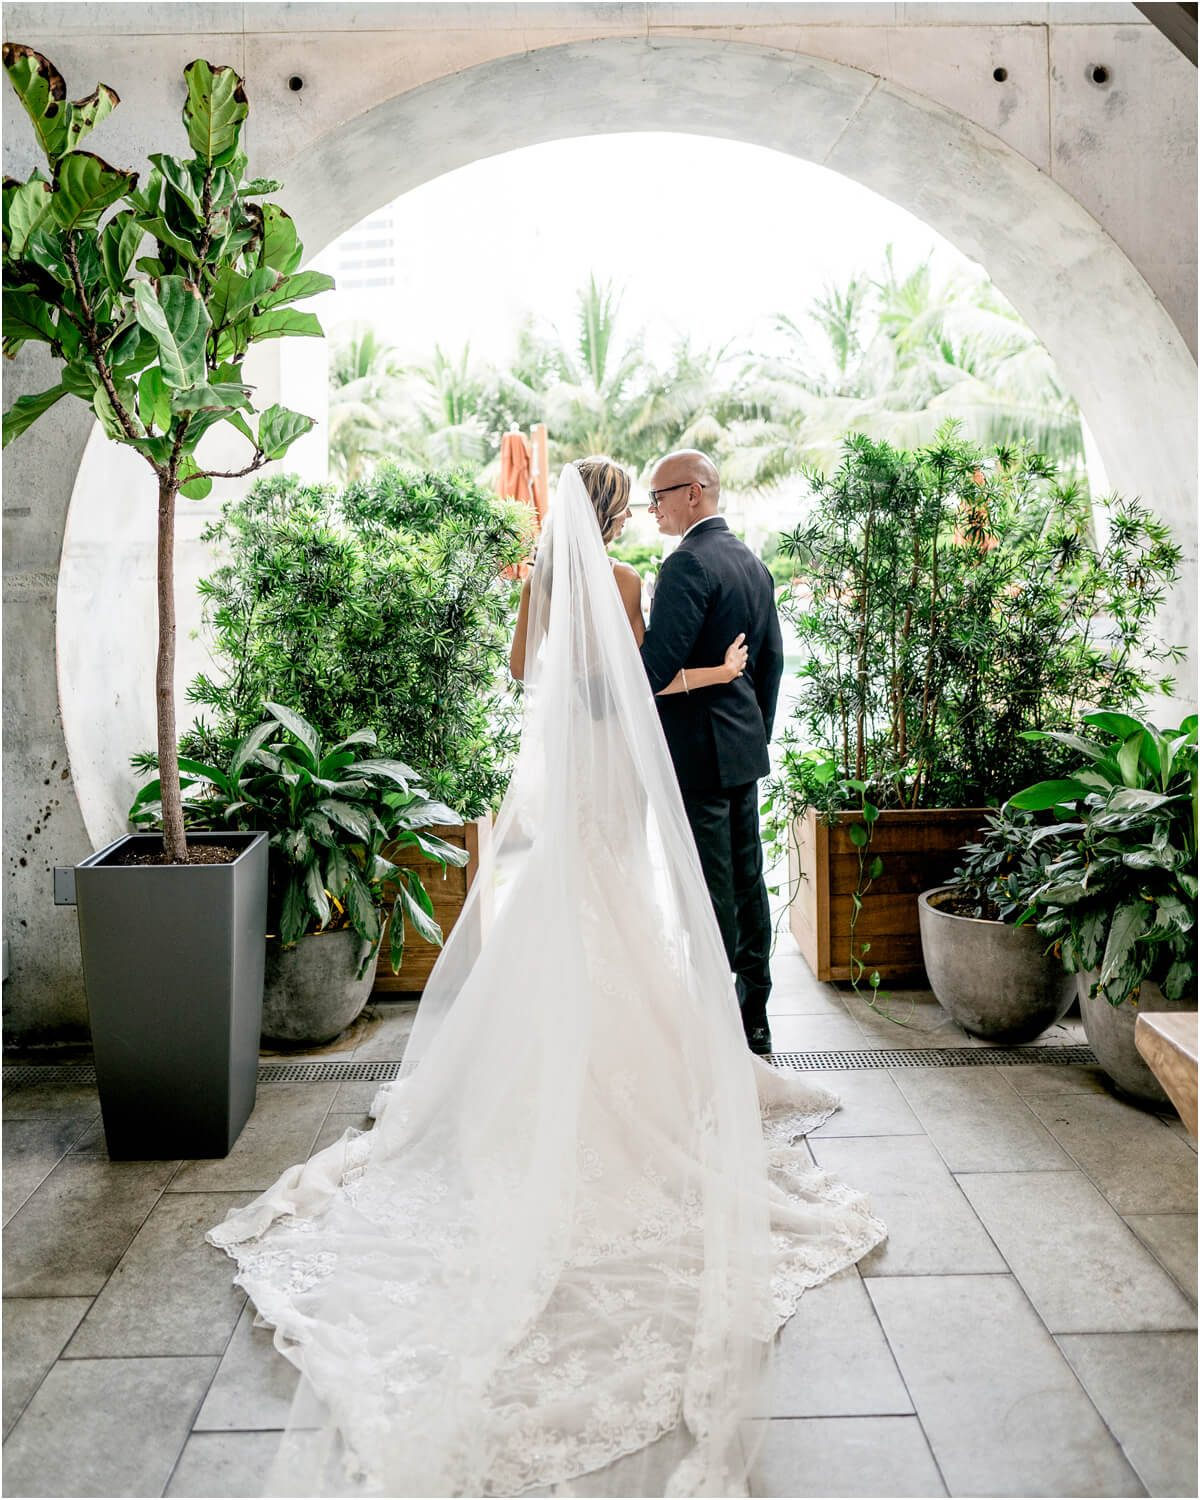 The East Hotel wedding photography